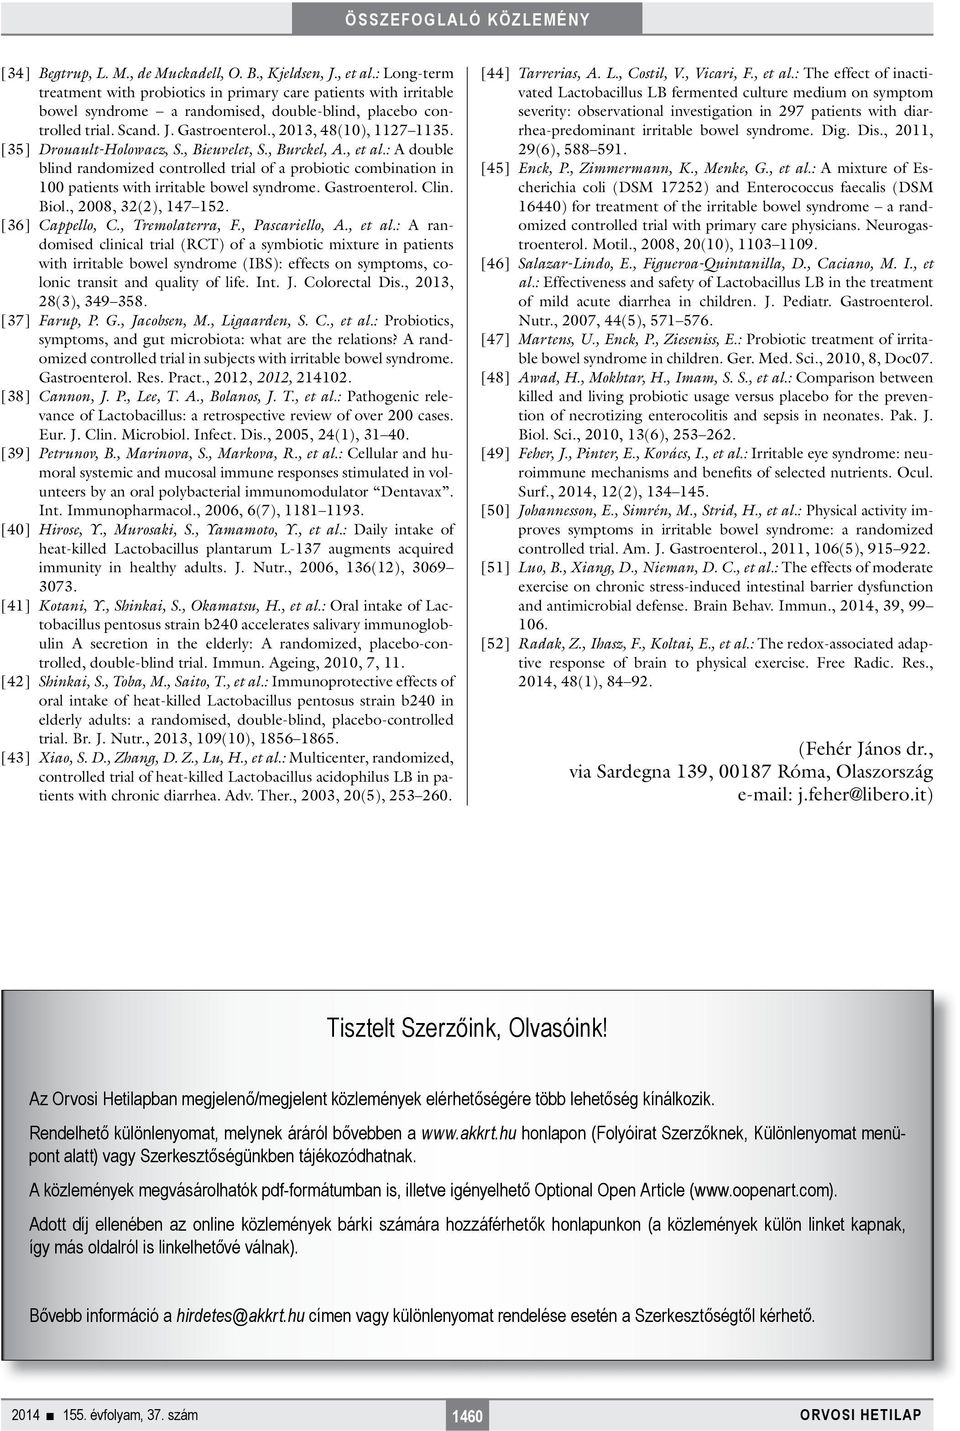 [35] Drouault-Holowacz, S., Bieuvelet, S., Burckel, A., et al.: A double blind randomized controlled trial of a probiotic combination in 100 patients with irritable bowel syndrome. Gastroenterol.